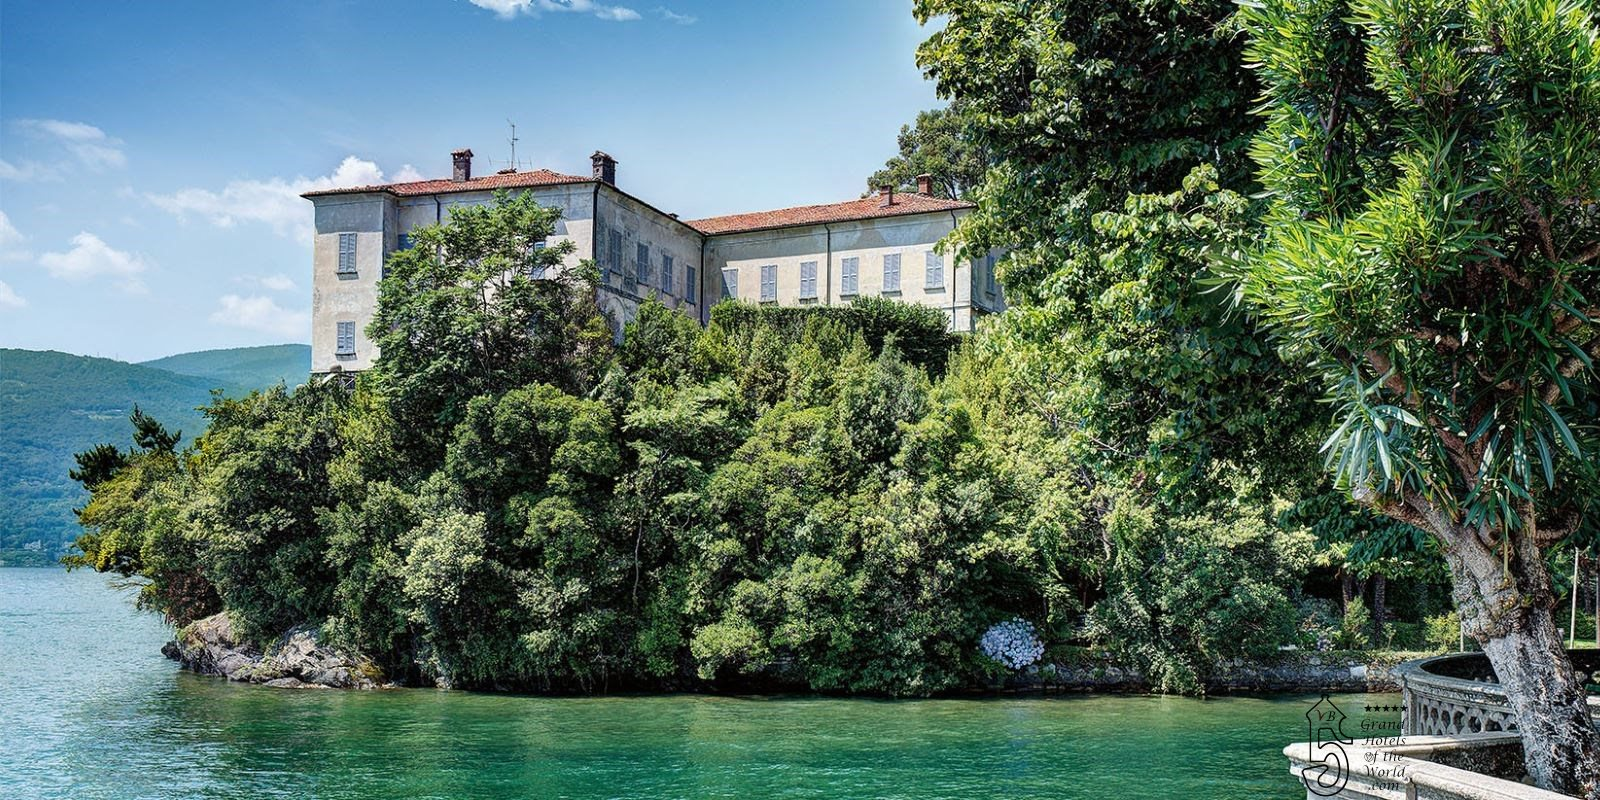 Grand Hotel Majestic in Verbania